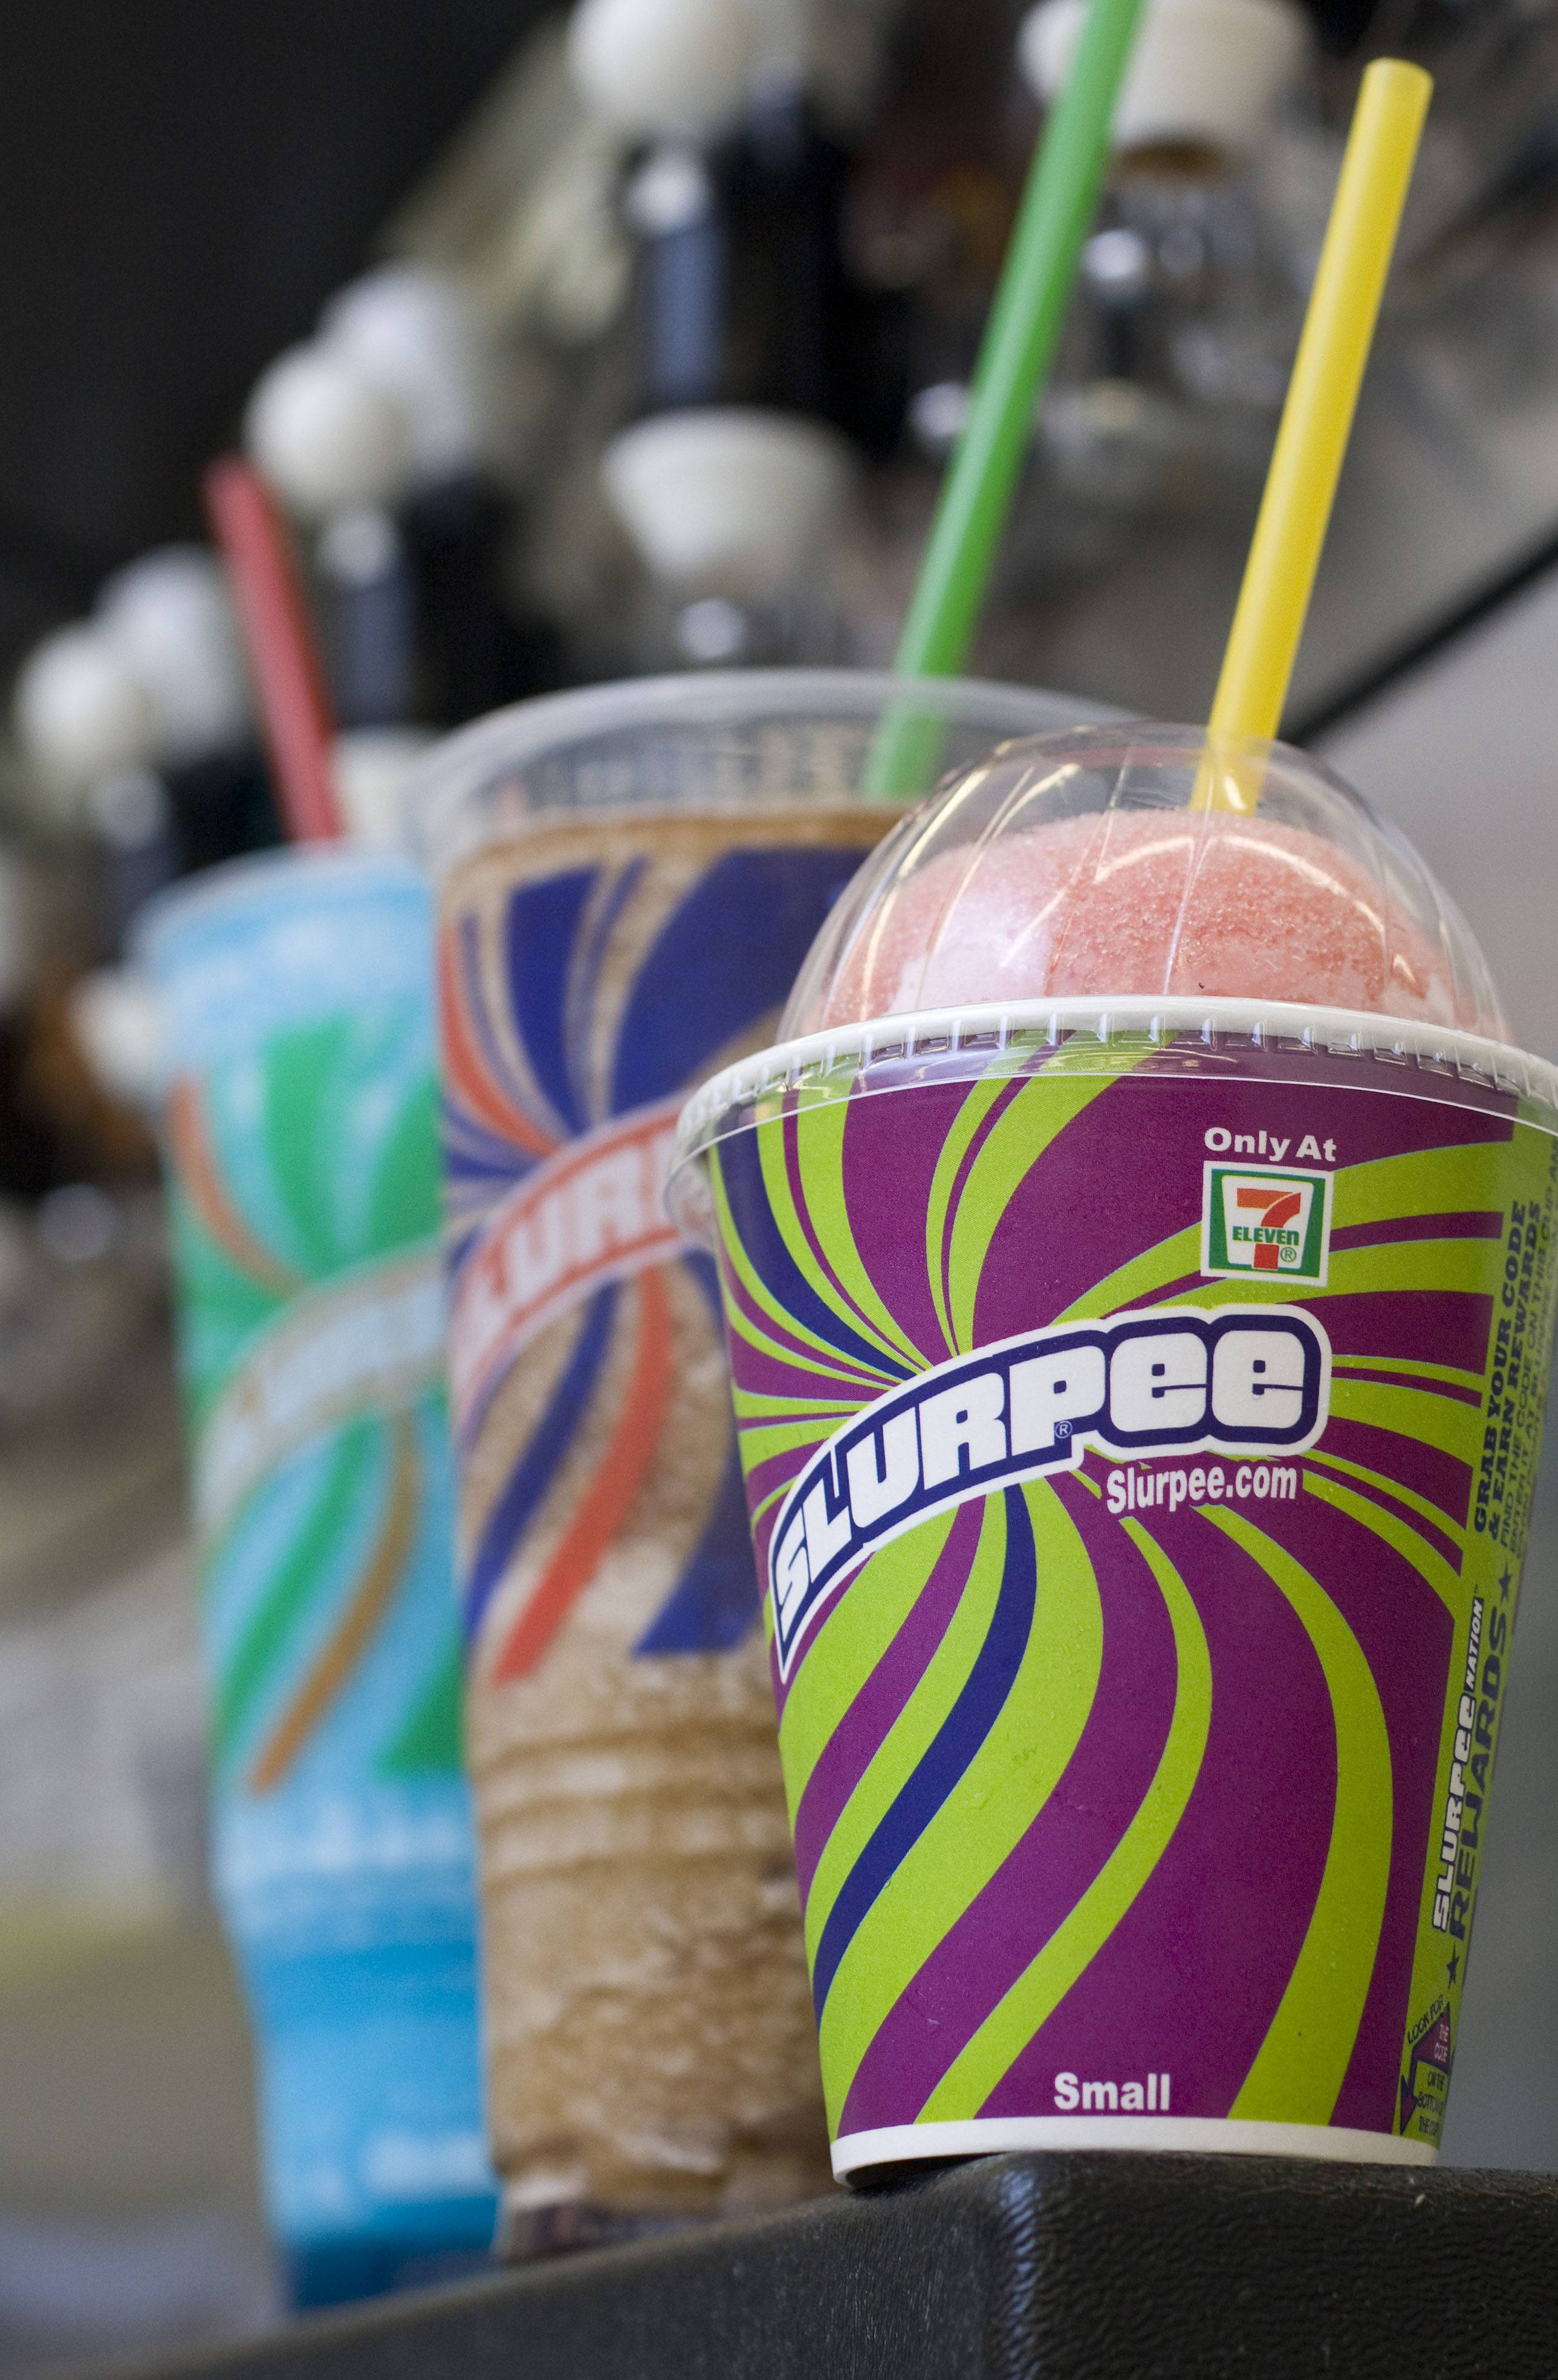 7-Eleven is celebrating its 91st birthday today by giving away free Slurpees.